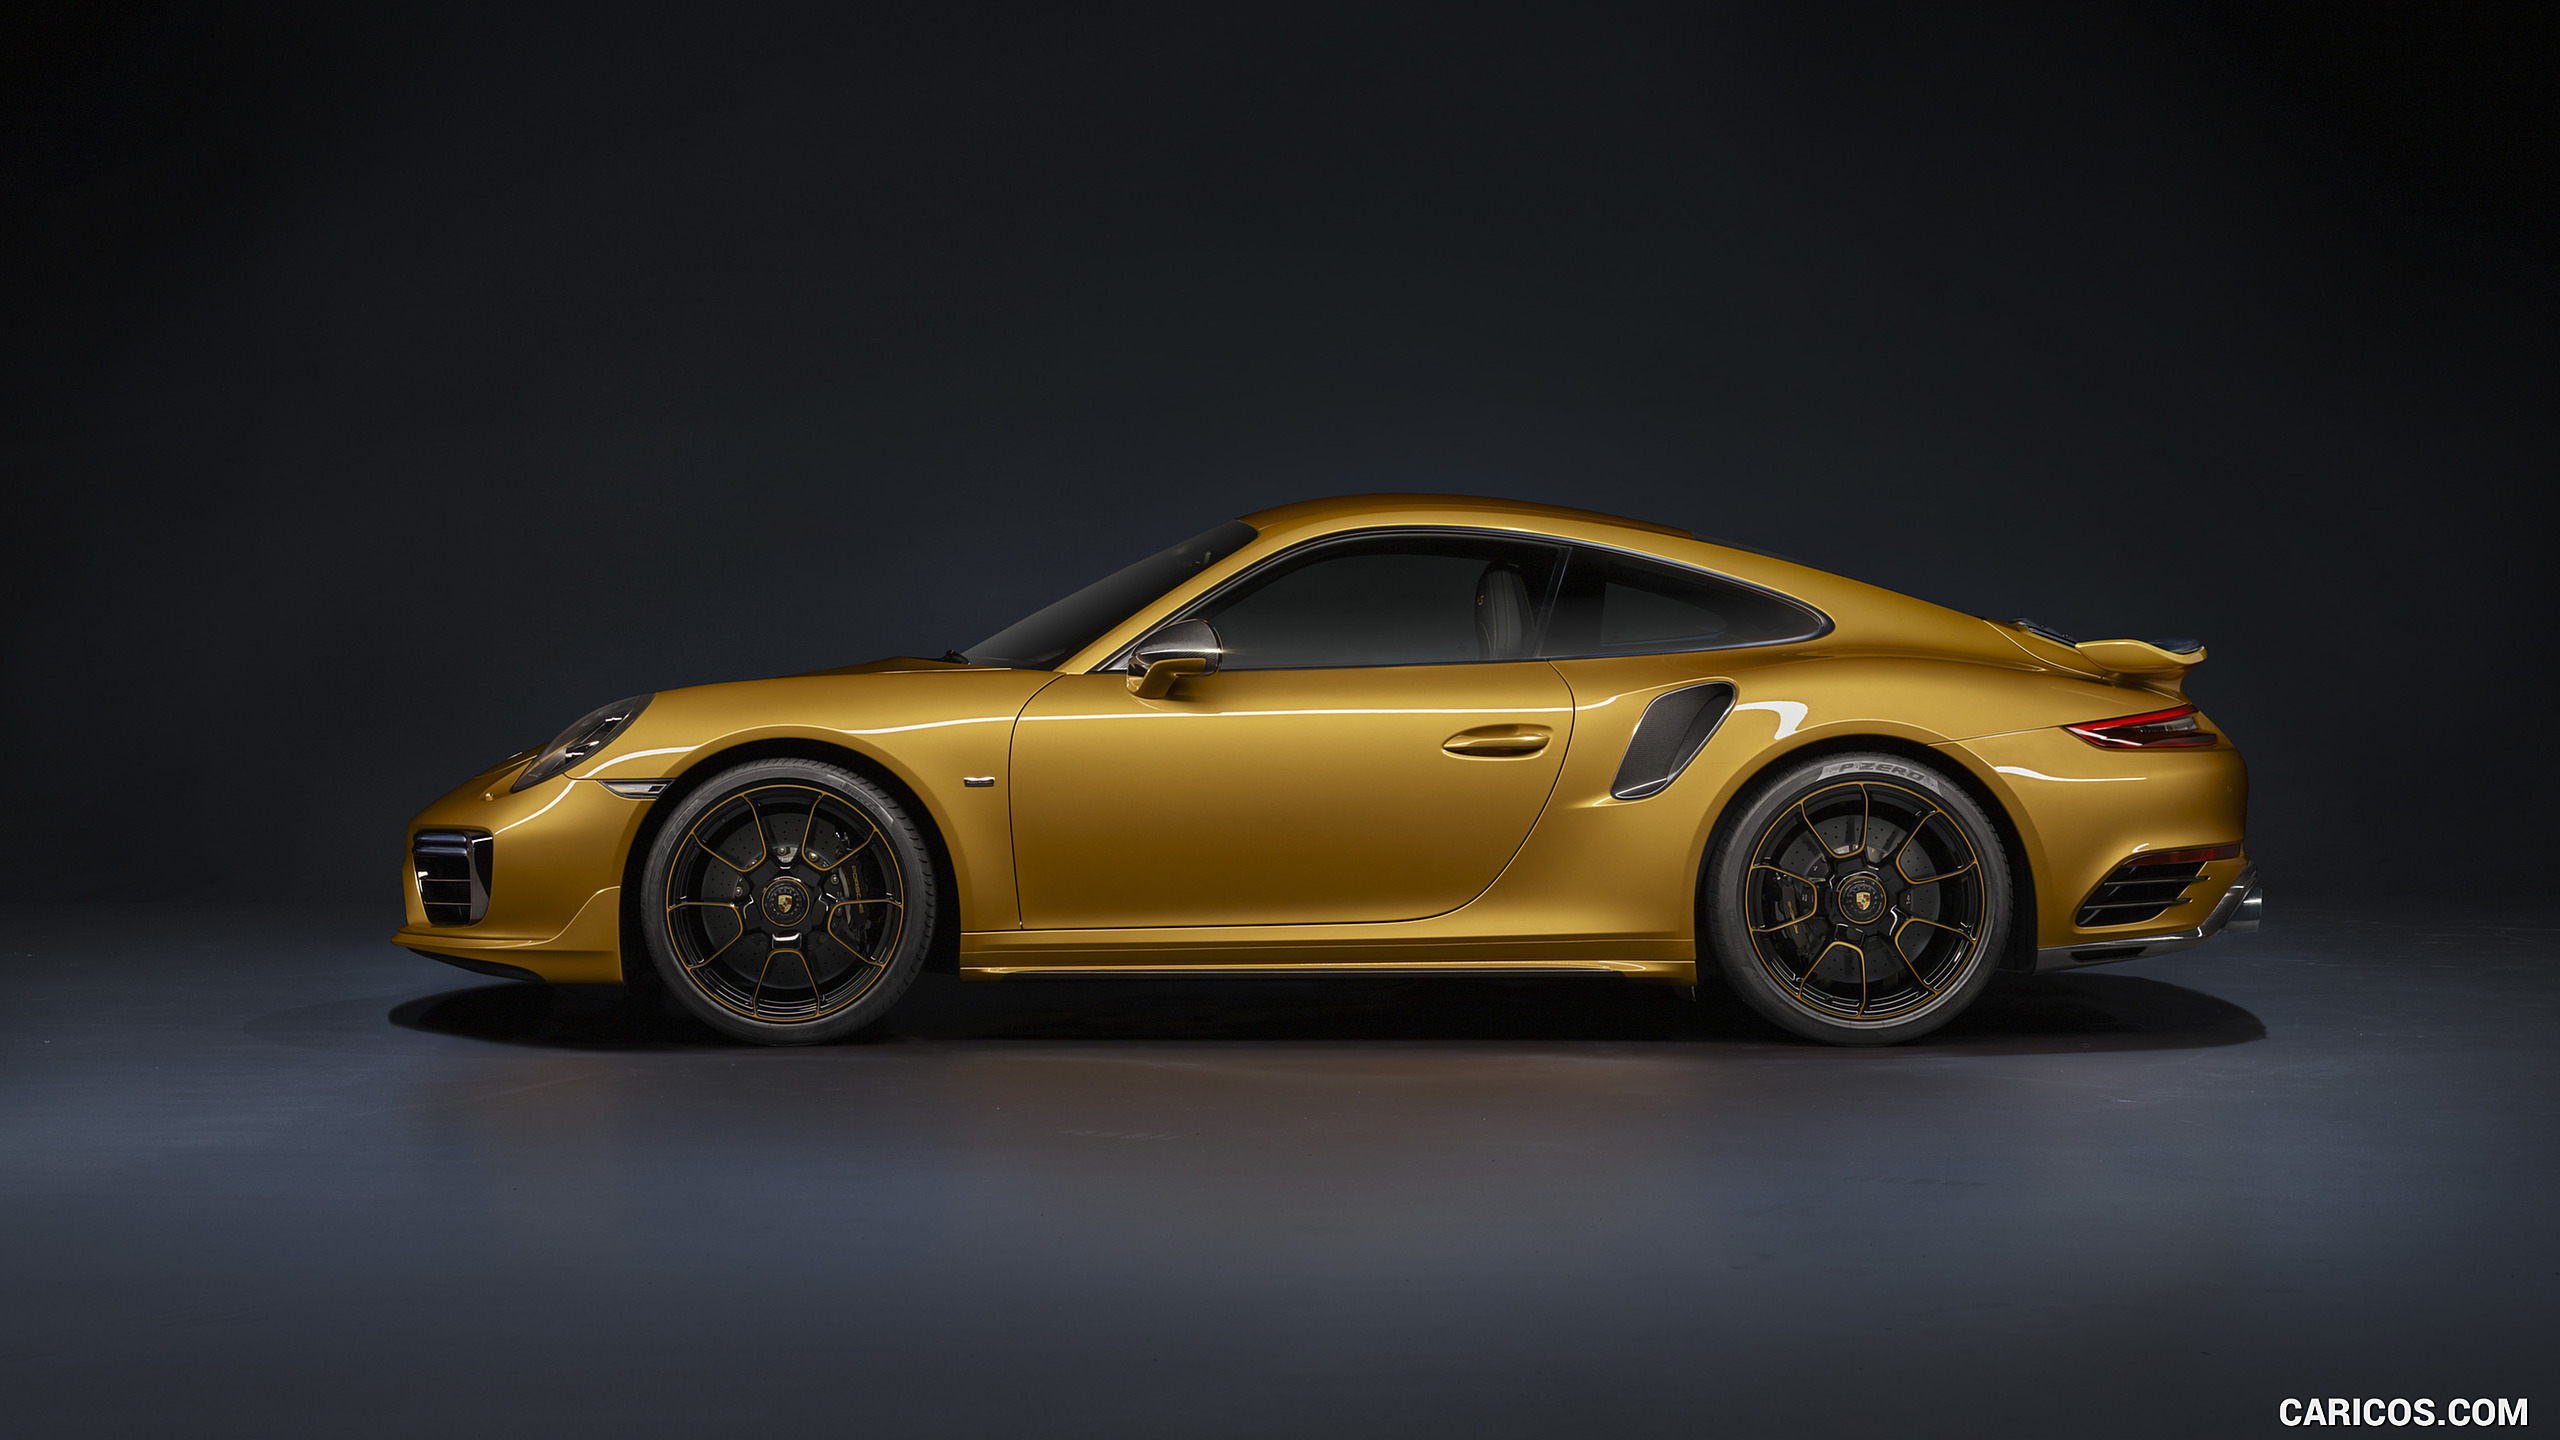 2018 Porsche 911 Turbo S Exclusive Series   Side HD Wallpaper 5 2560x1440